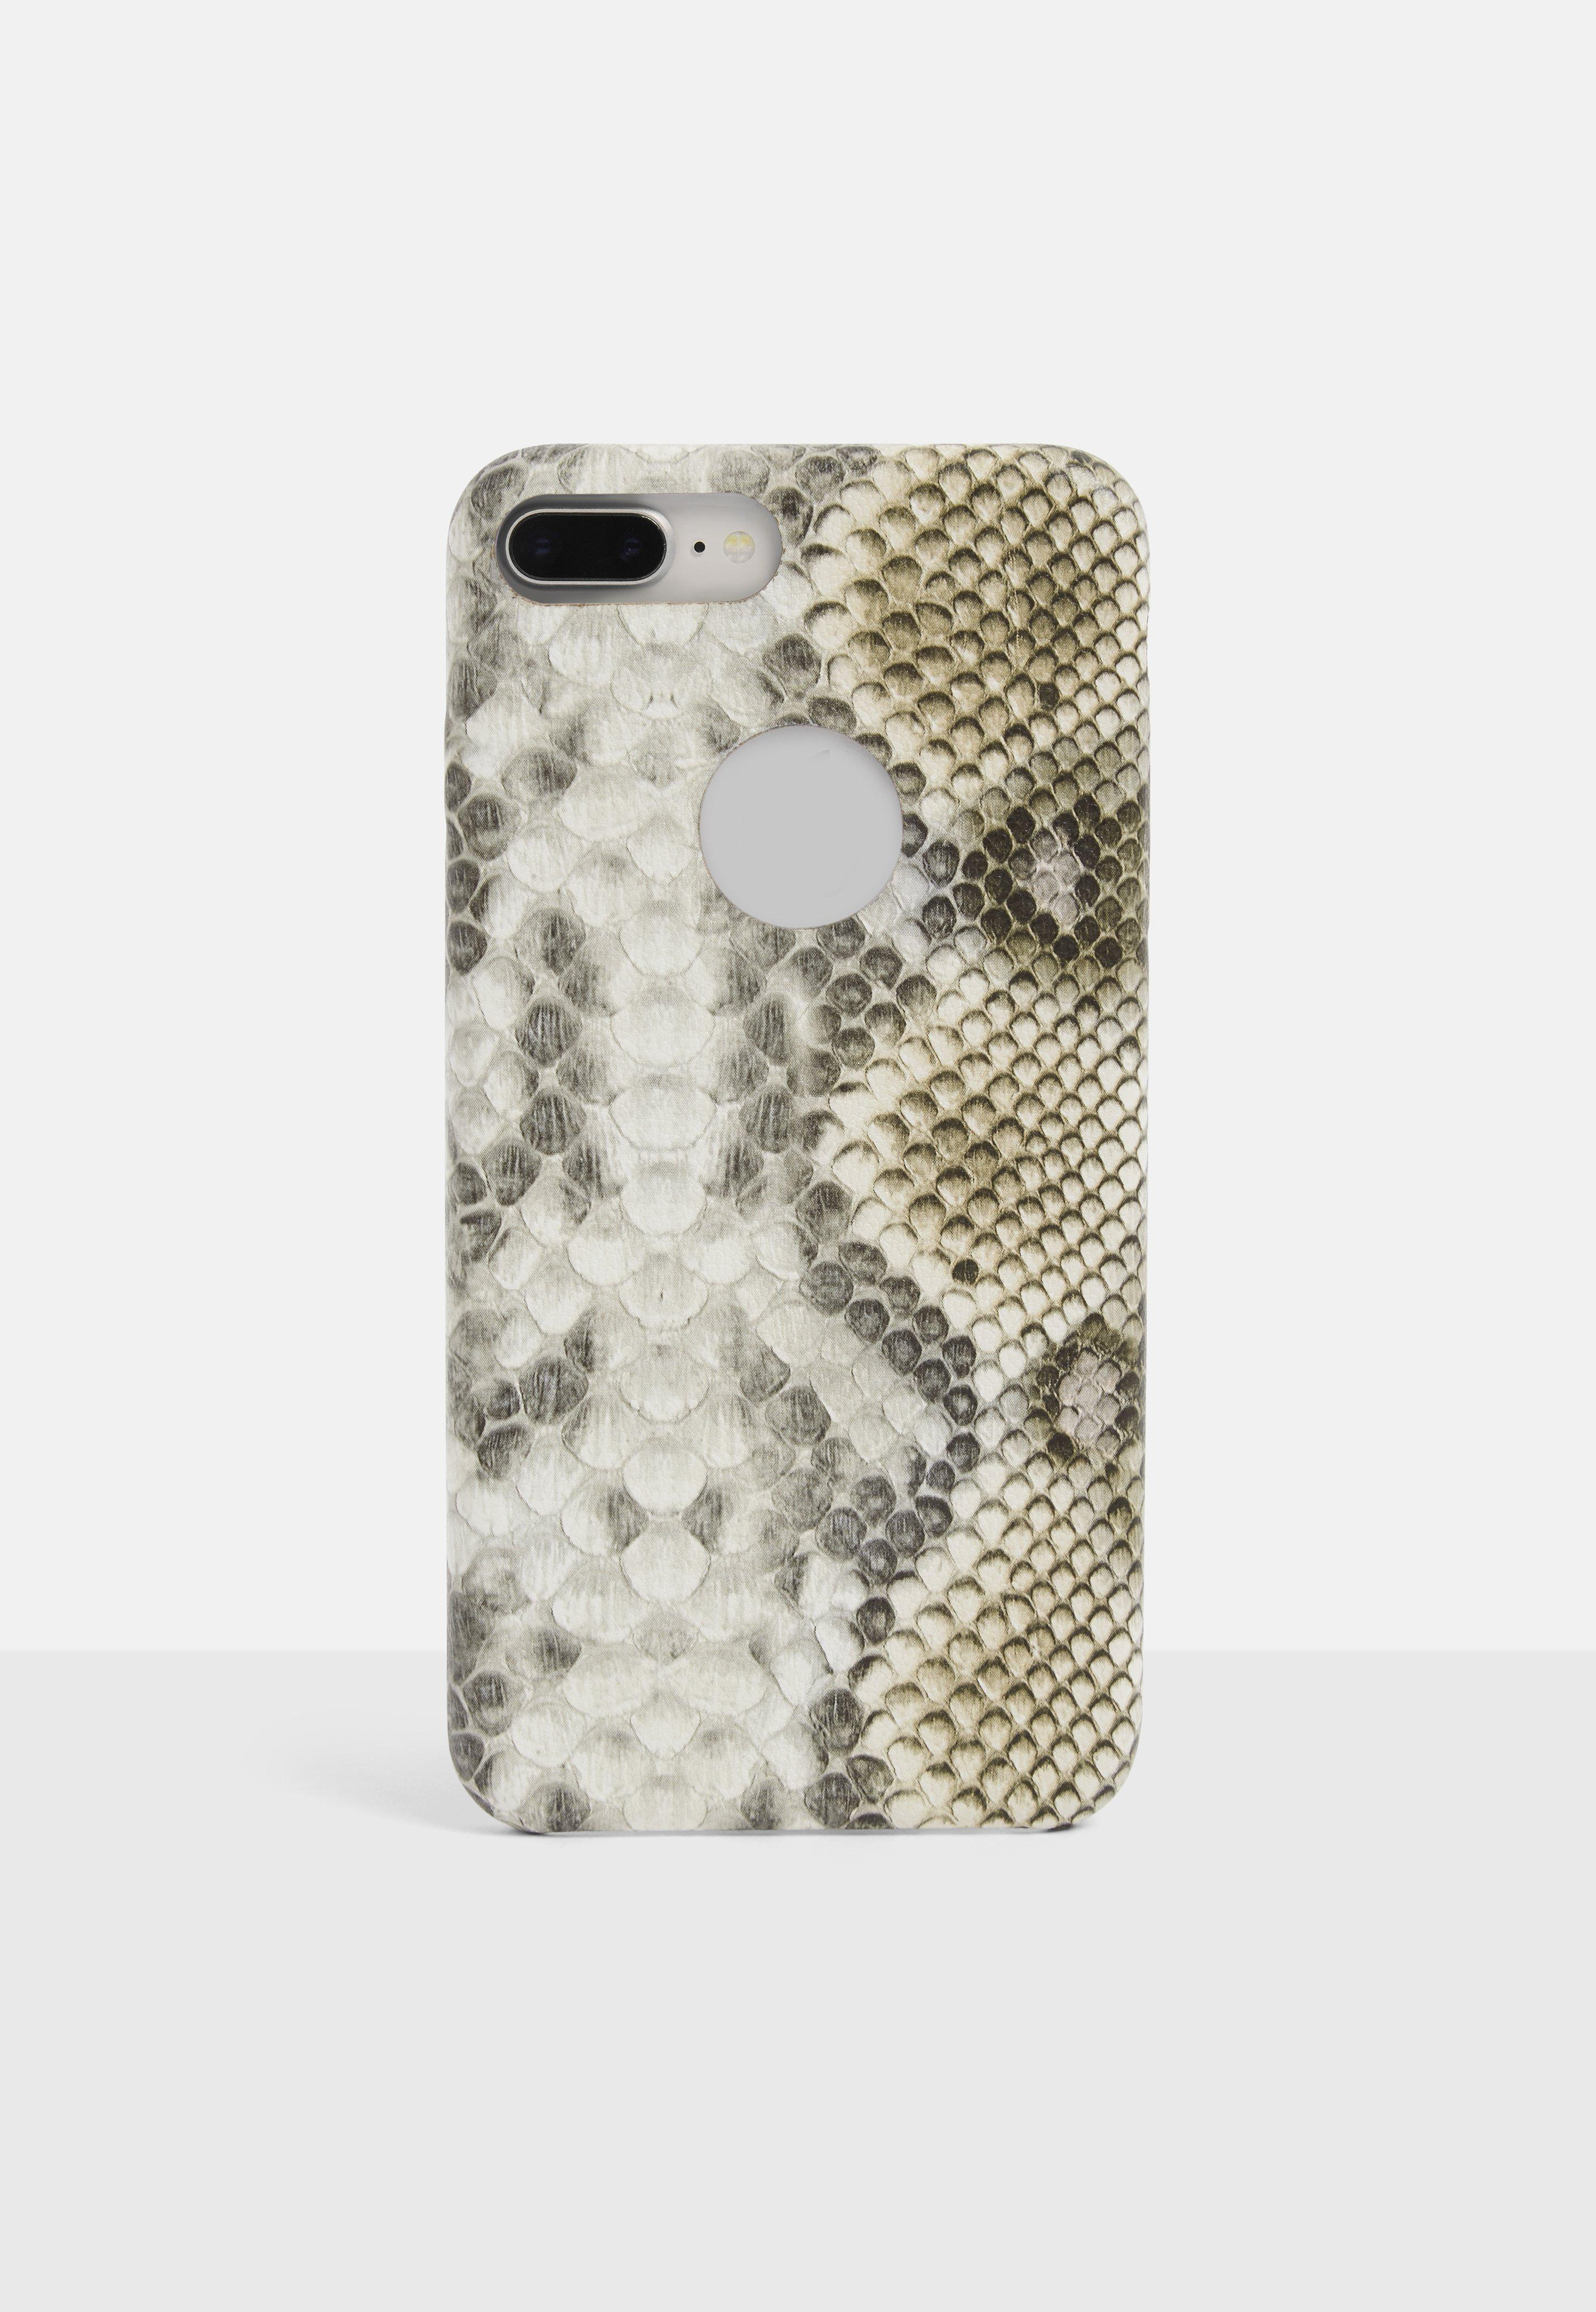 654404cb57 iPhone Cases & Screen Protectors - Missguided